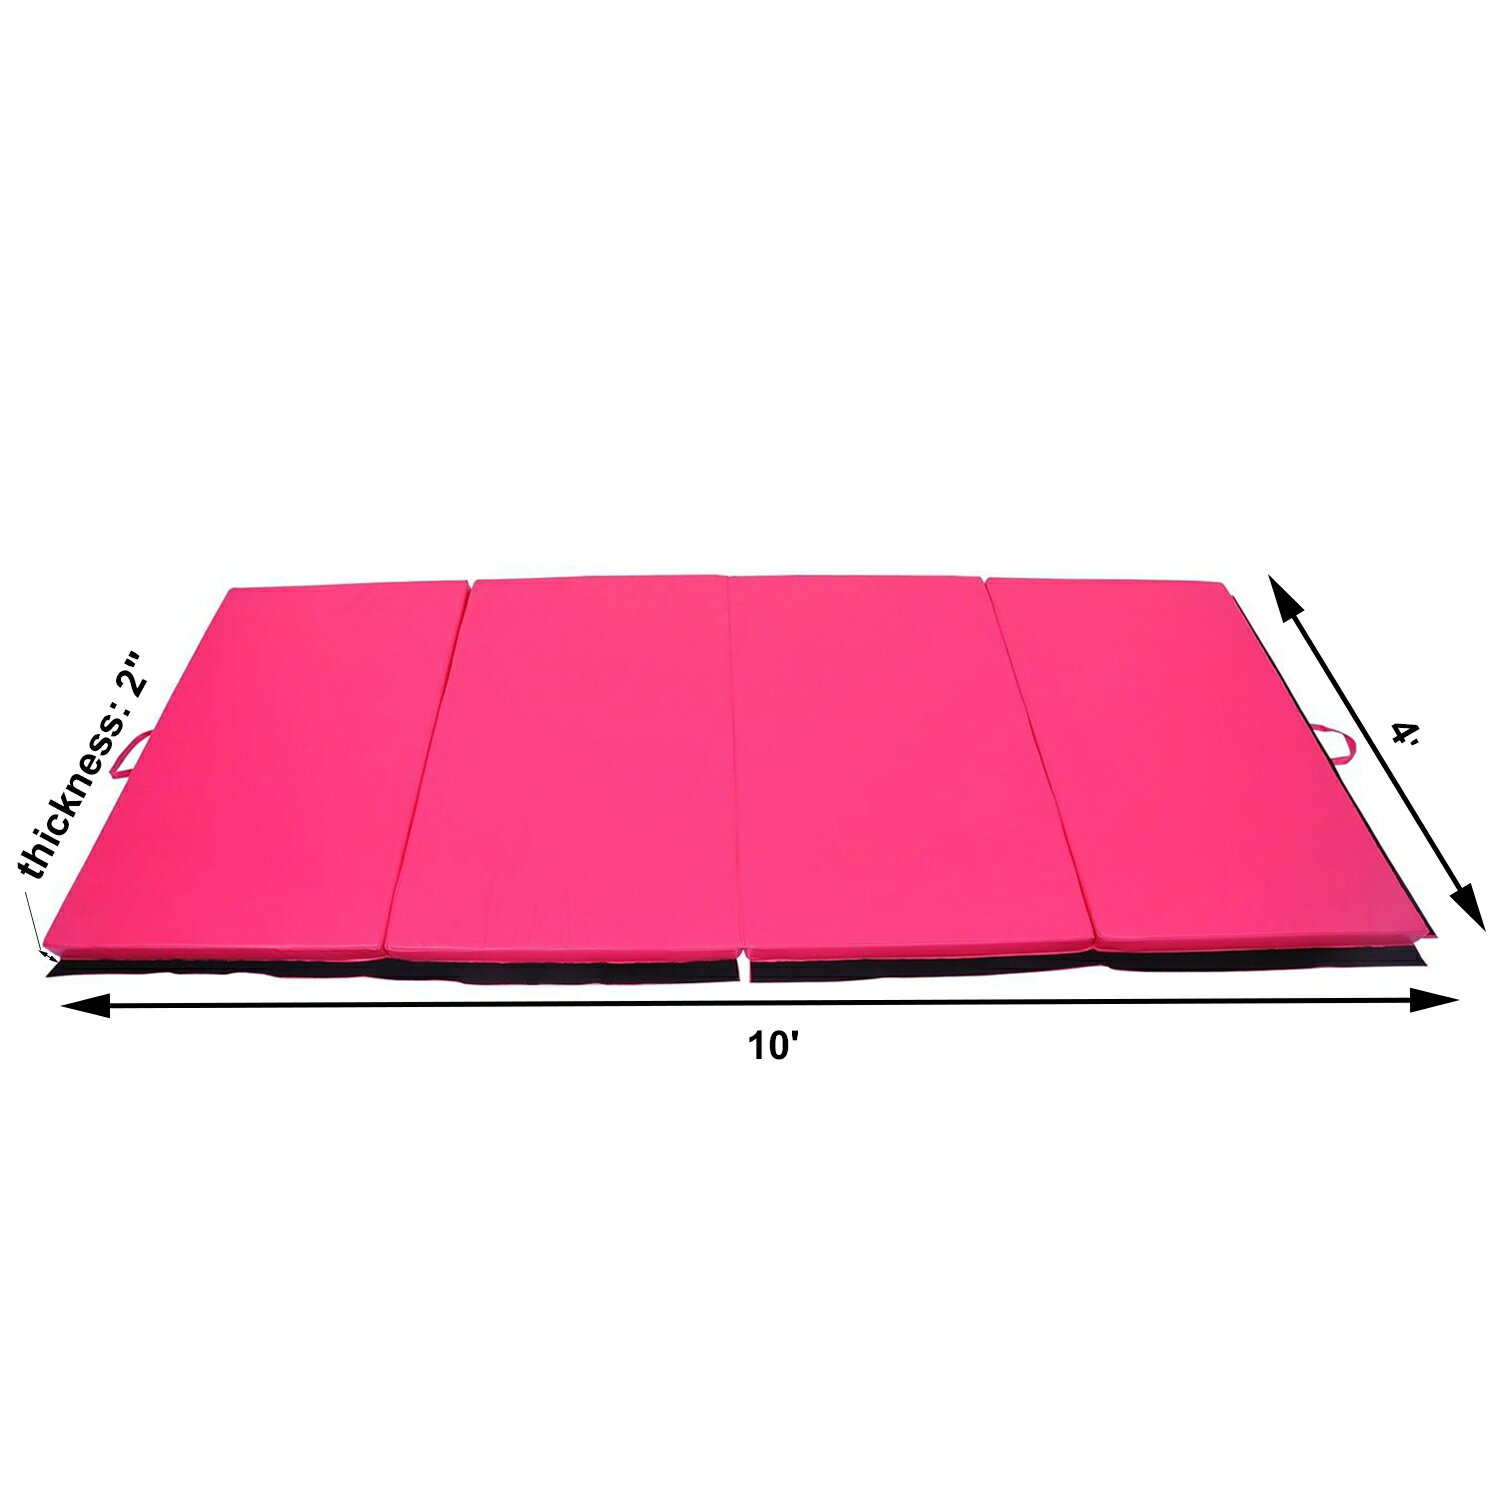 "Soozier 10' x 4' x 2"" PU Leather Folding Gymnastics Tumbling / Martial Arts Mat with Handles - Pink 1"